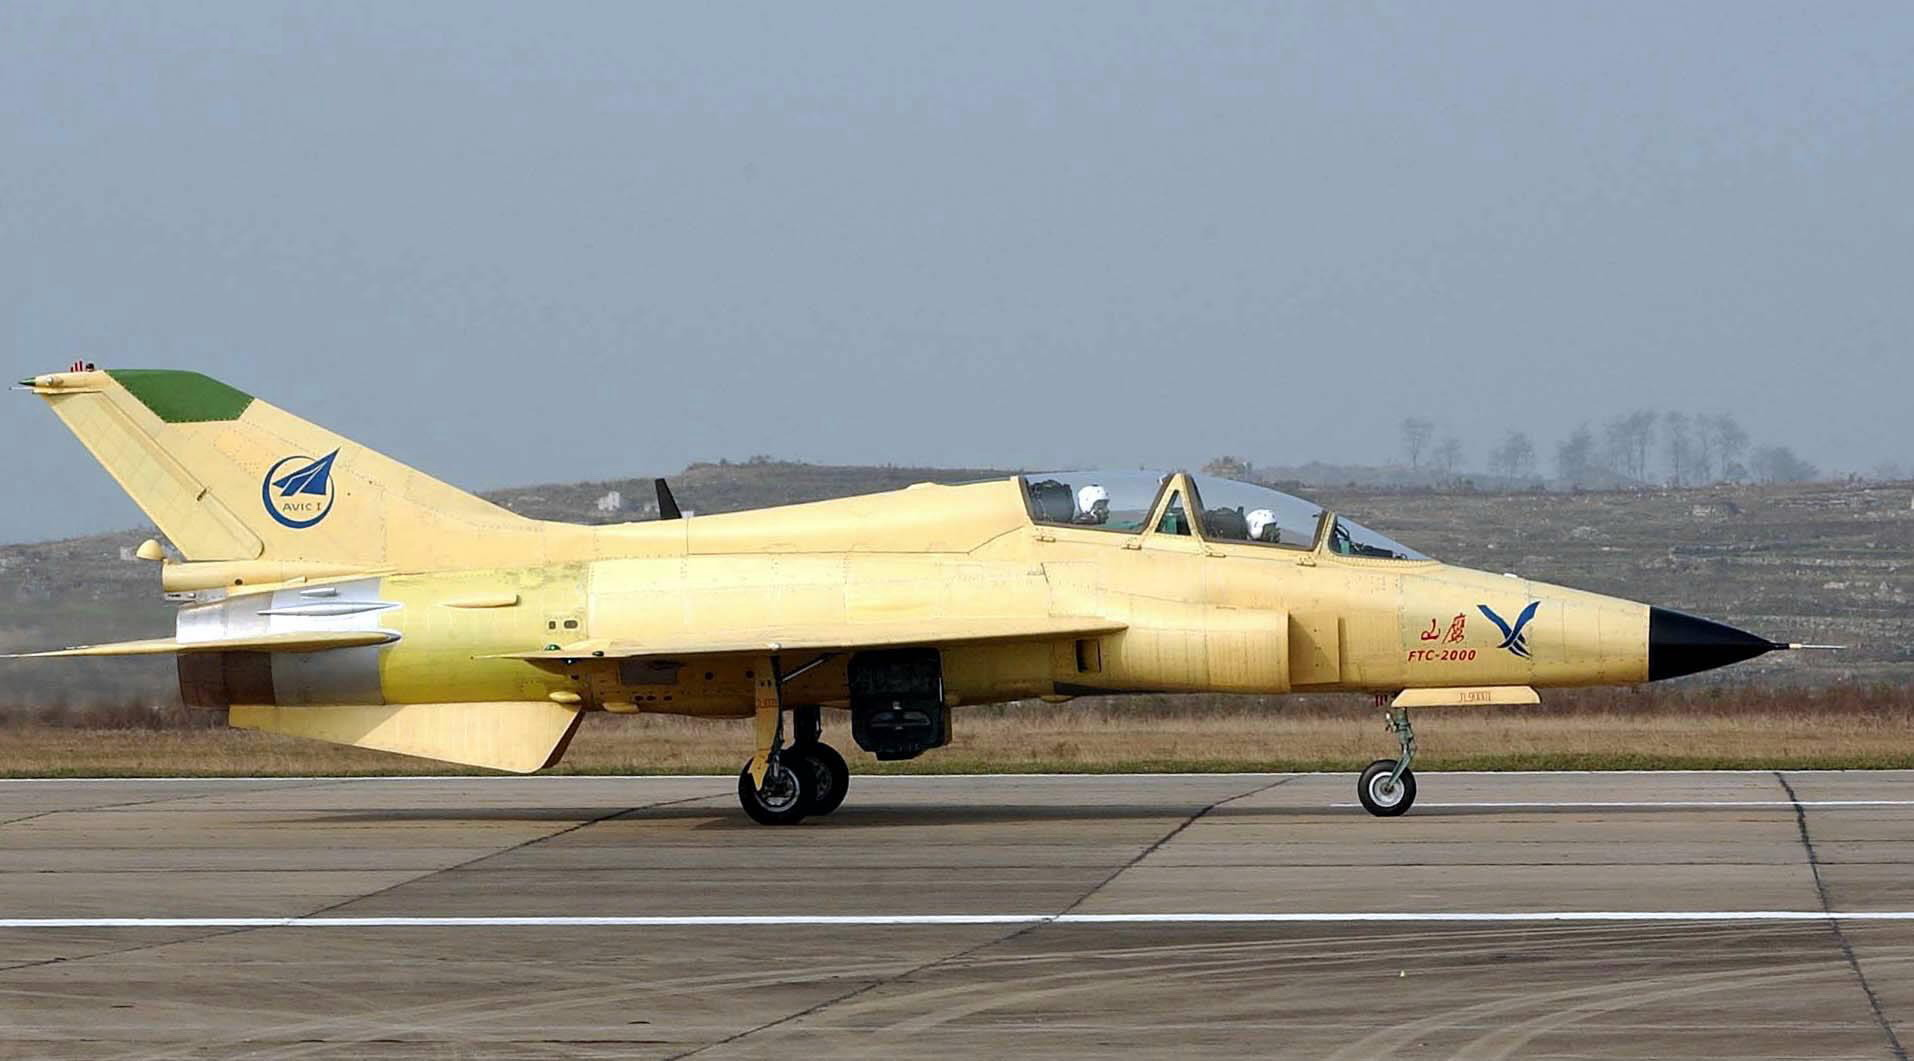 india helicopters with Sudan Orders Six Guizhou Ftc 2000 Fighter Trainers on Jf 17 Block 2 And Block 3 Details Confirmed also Schematics Of Indias Light  bat also Being Prepared Indias Response To Cyclone Phailin 20131024 furthermore Lynx Helicopter also Indias Spicejet Orders 205 Boeing Aircraft.